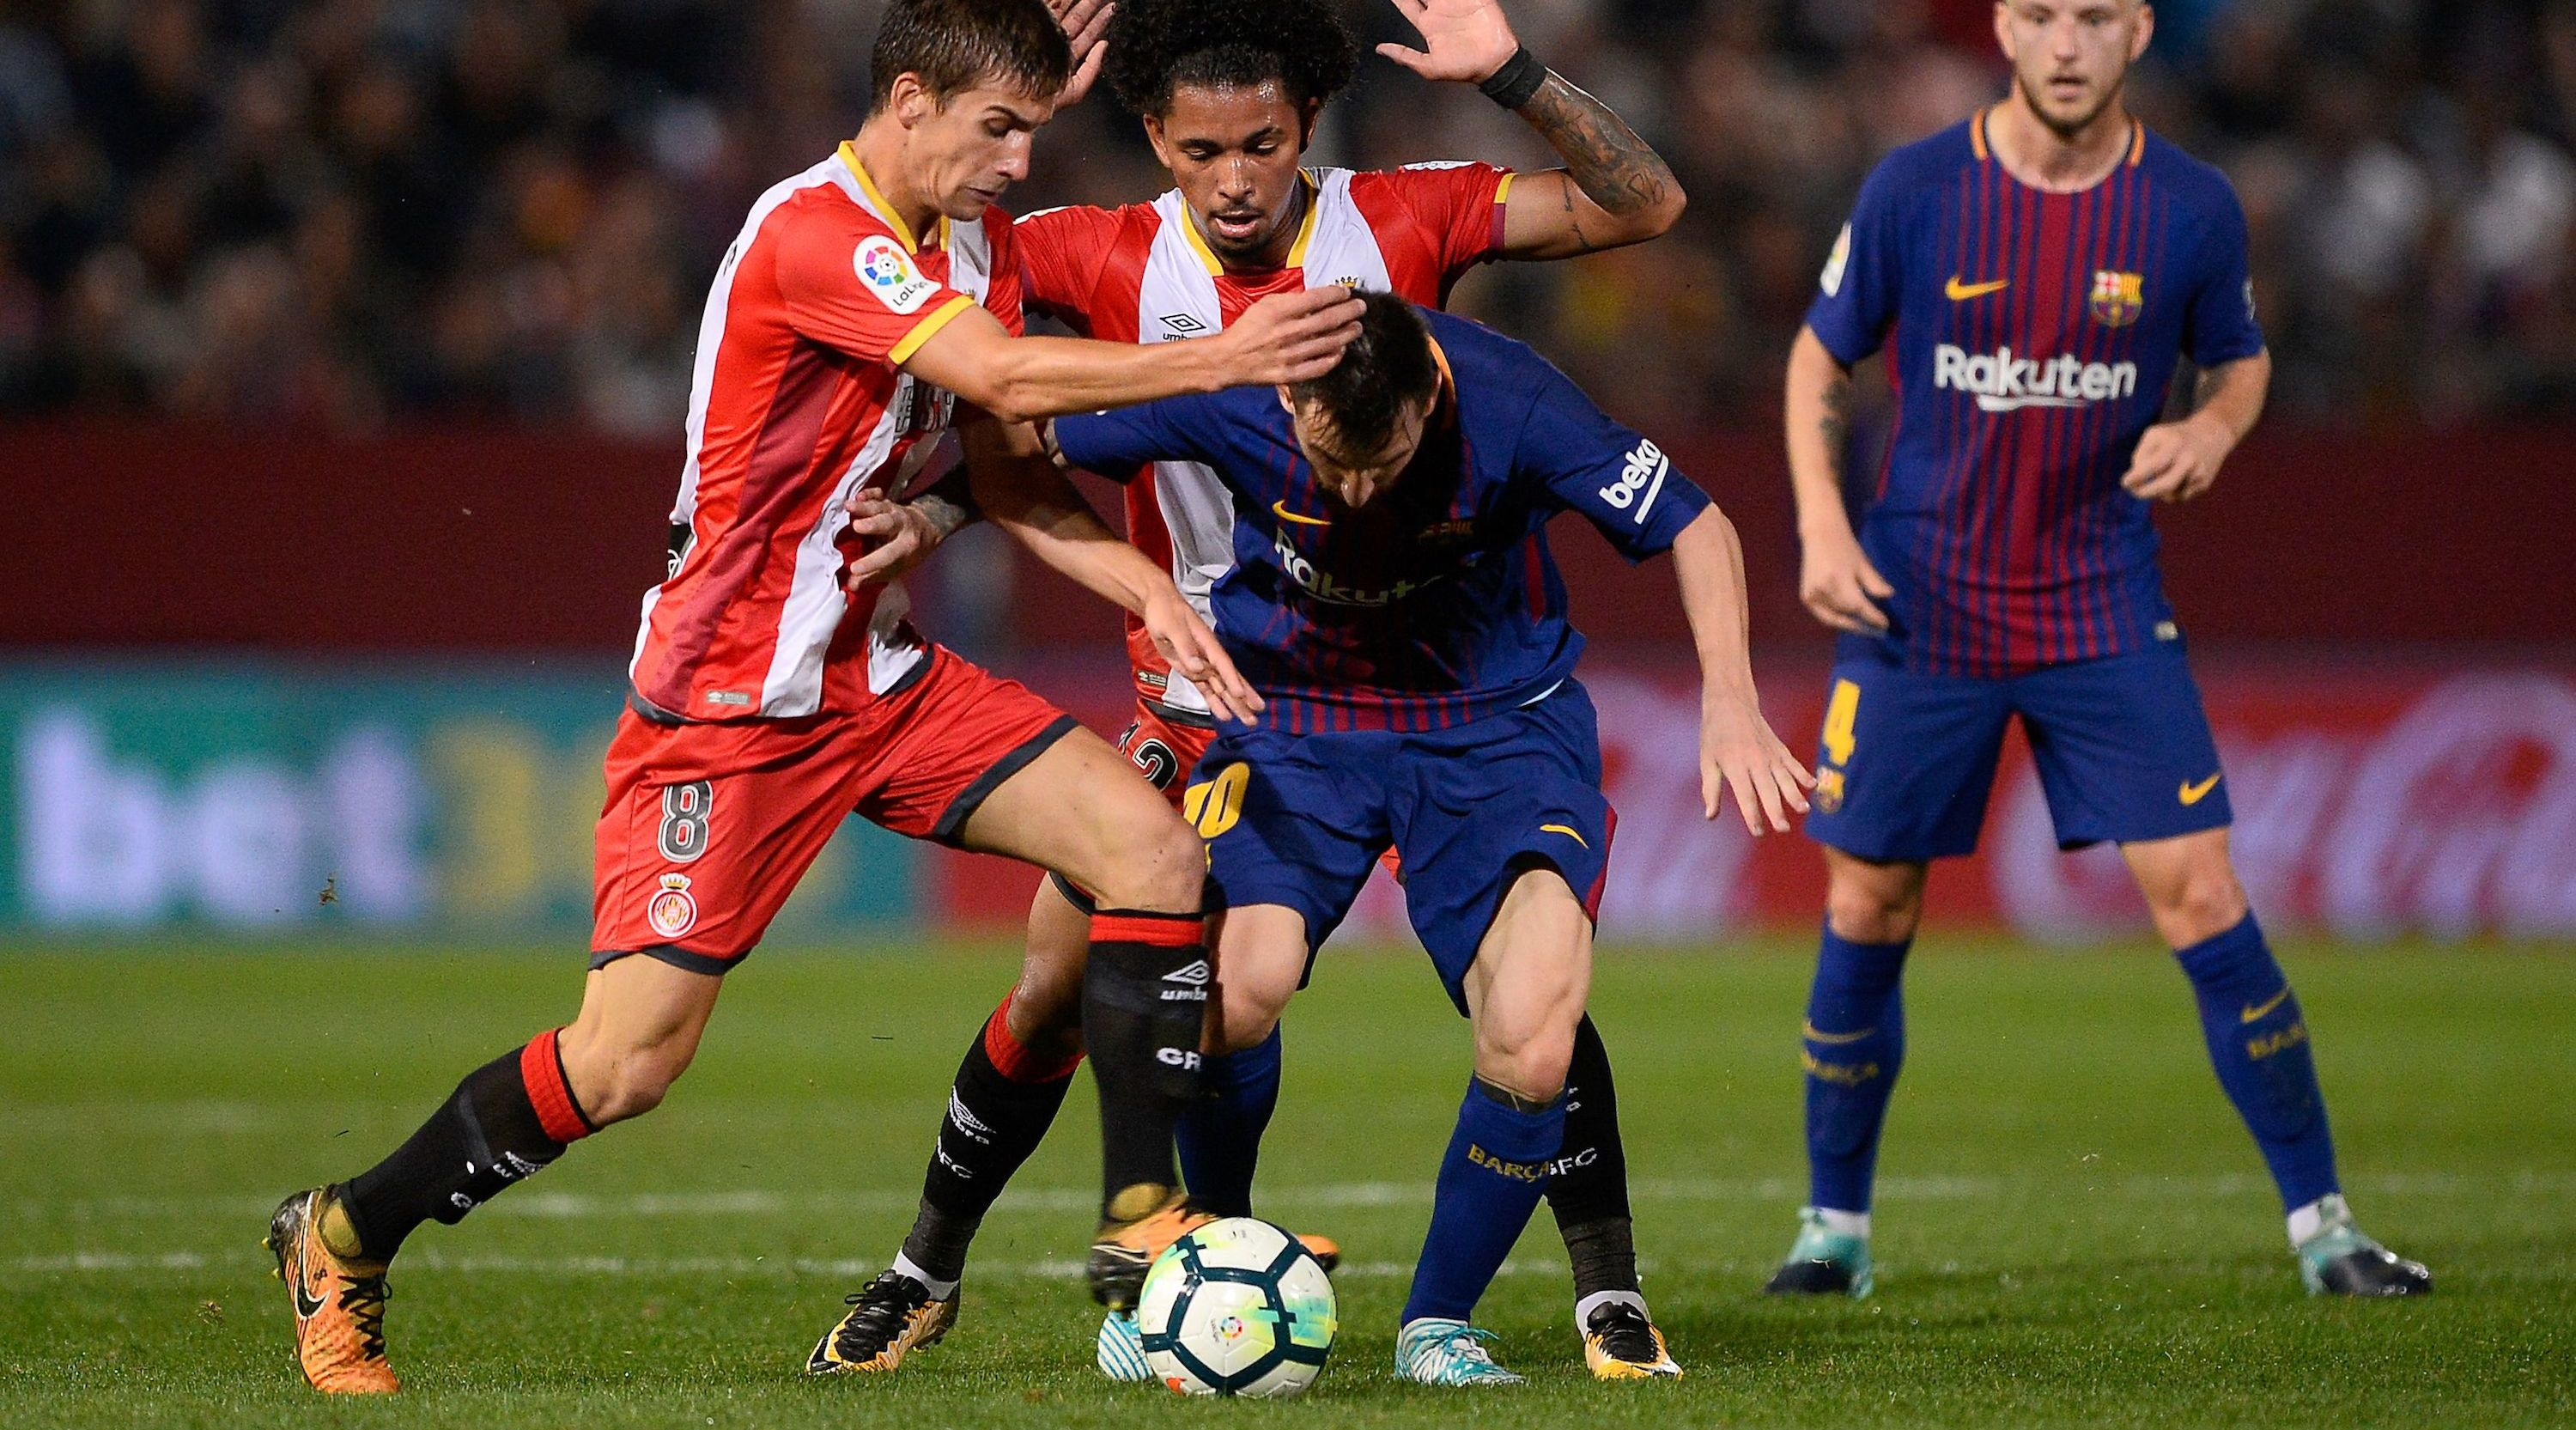 Barcelona's forward from Argentina Lionel Messi (C) vies with Girona's midfielder Pere Pons (L) and Girona's midfielder Alex Granell during the Spanish league football match Girona FC vs FC Barcelona at the Montilivi stadium in Girona on September 23, 2017. / AFP PHOTO / Josep LAGO (Photo credit should read JOSEP LAGO/AFP/Getty Images)